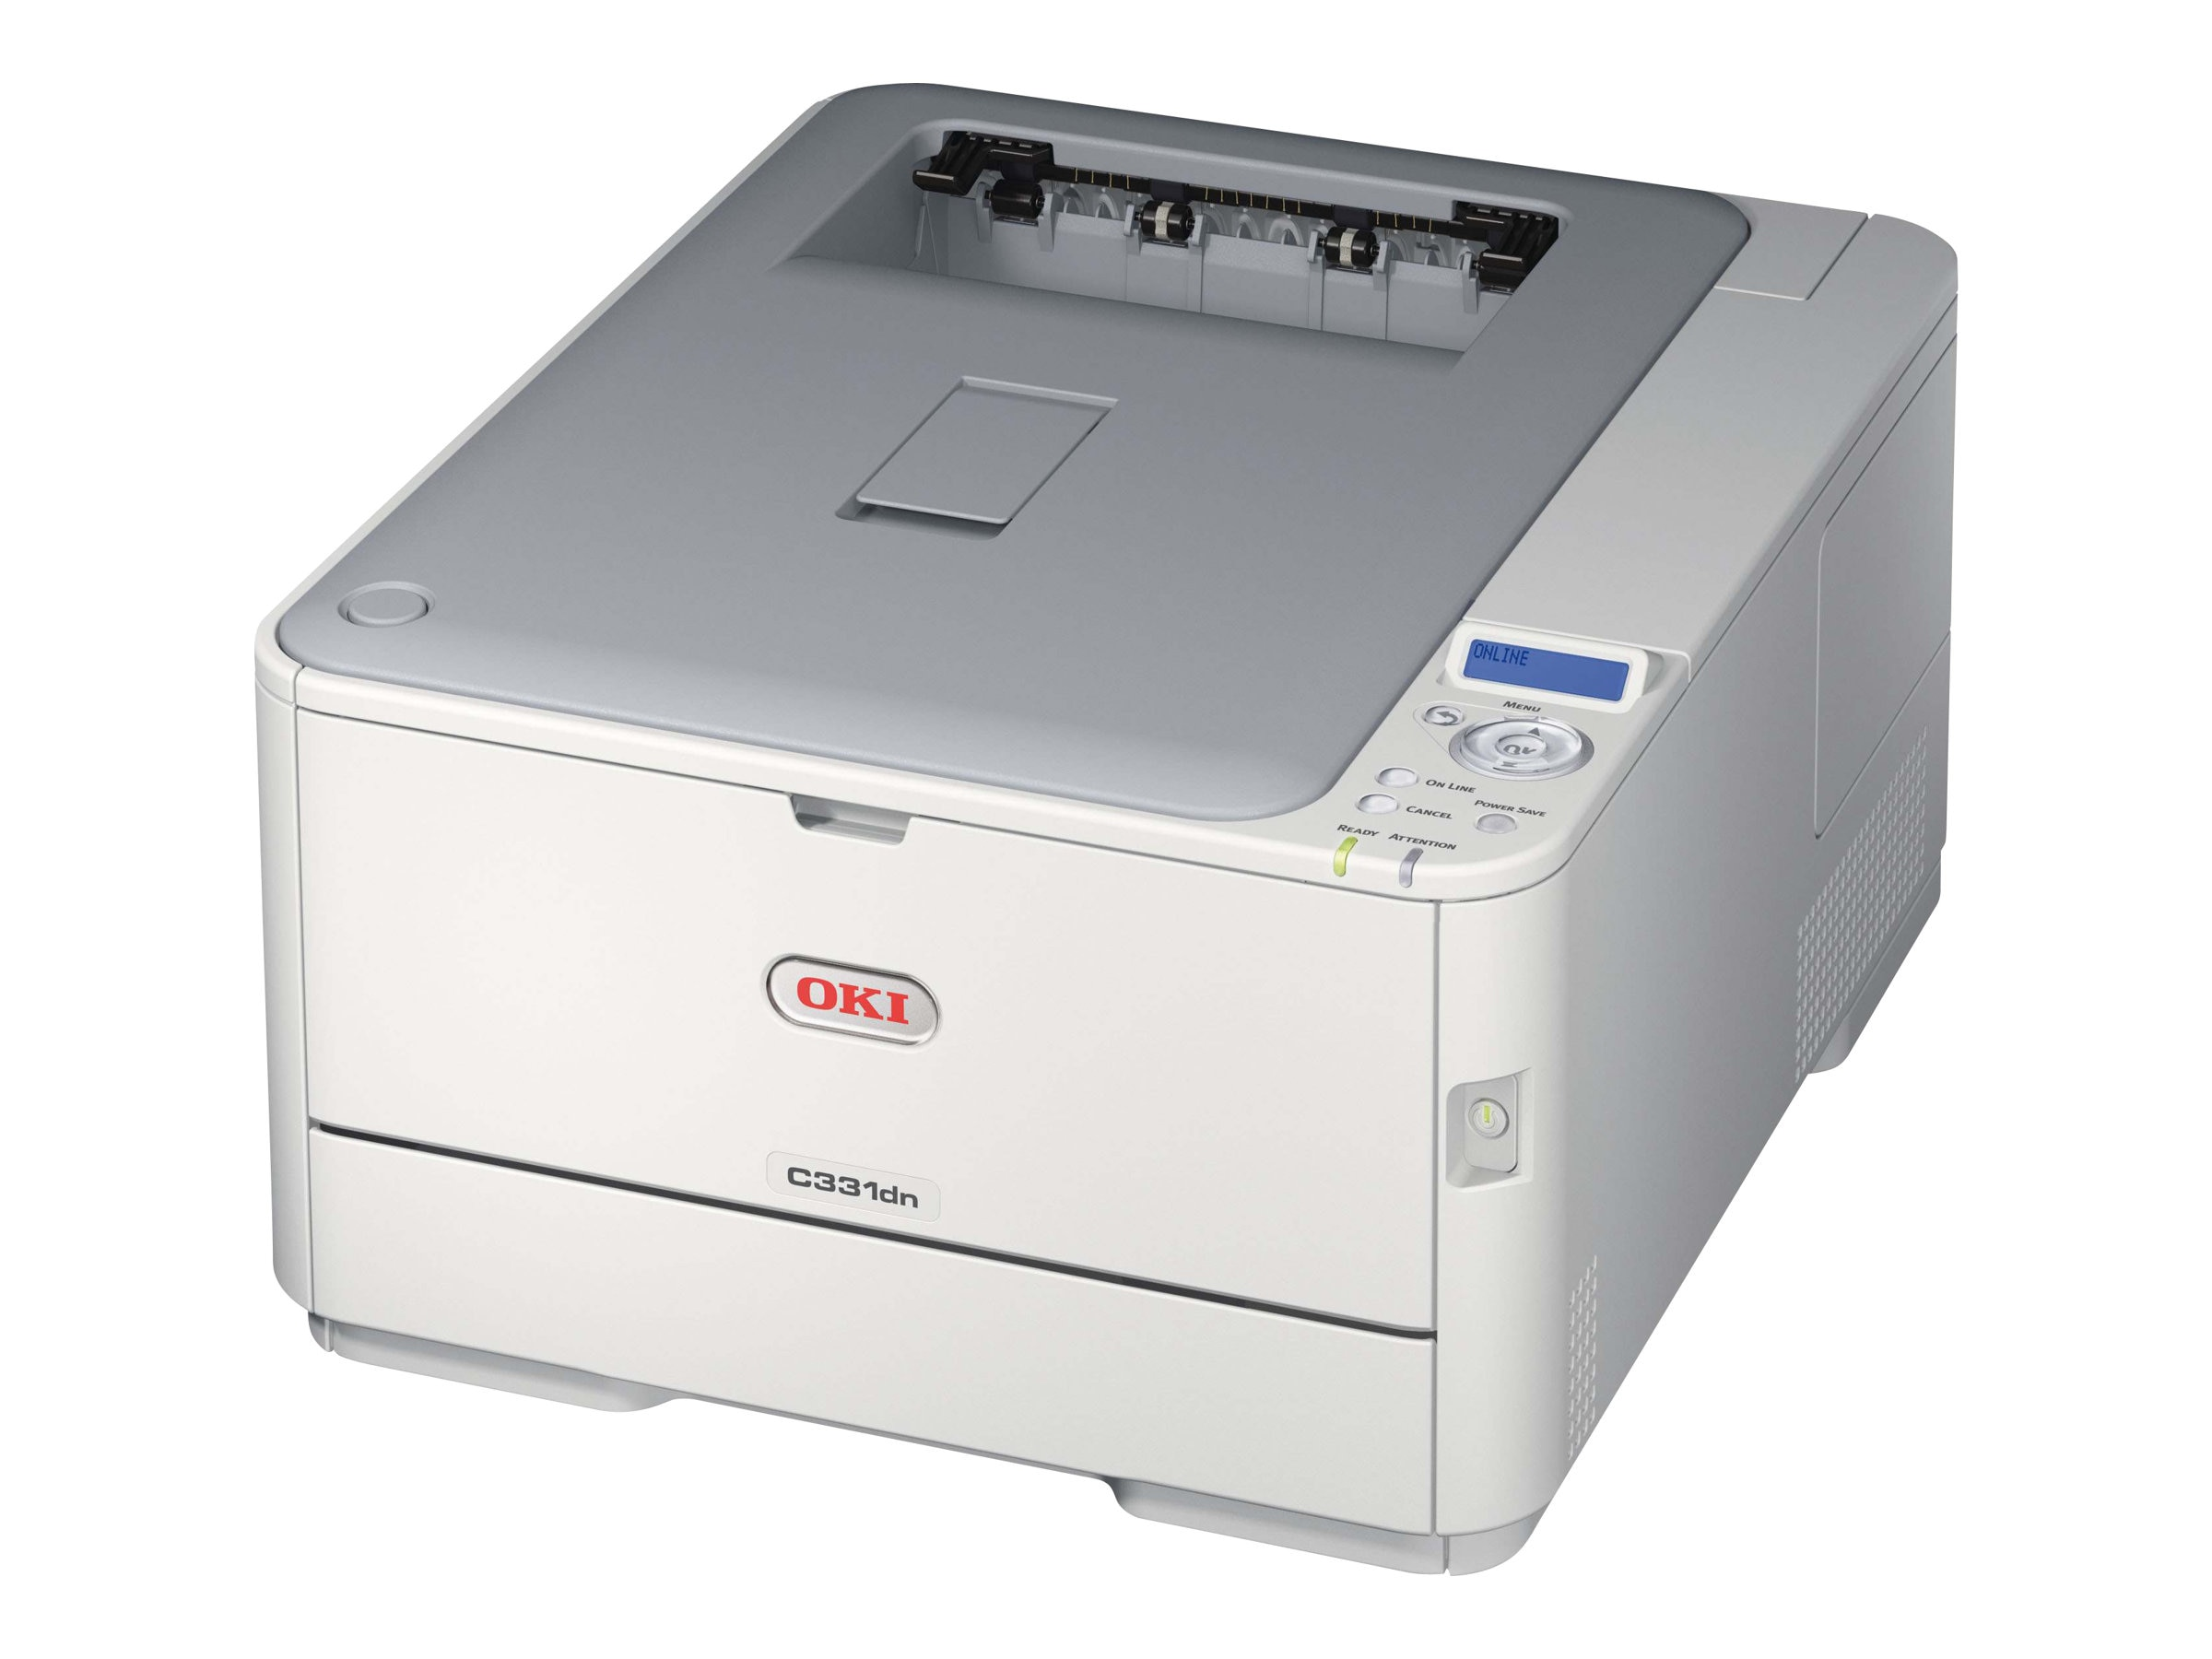 Oki C331dn Digital Color Printer